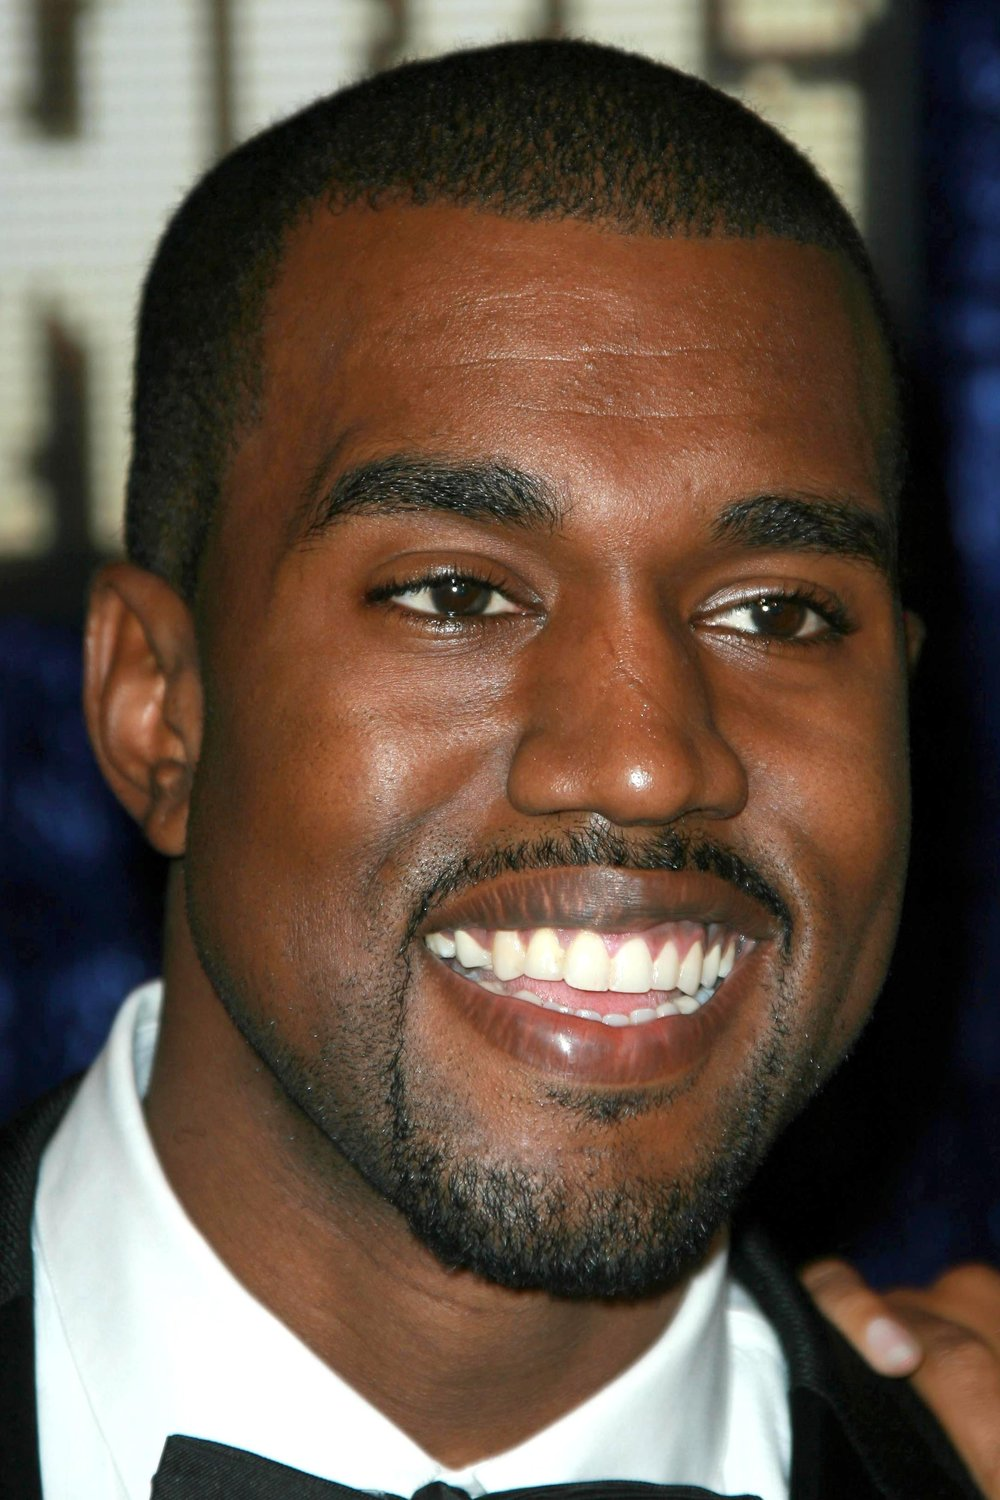 haircuts-oval-faces-kanye-west.jpg